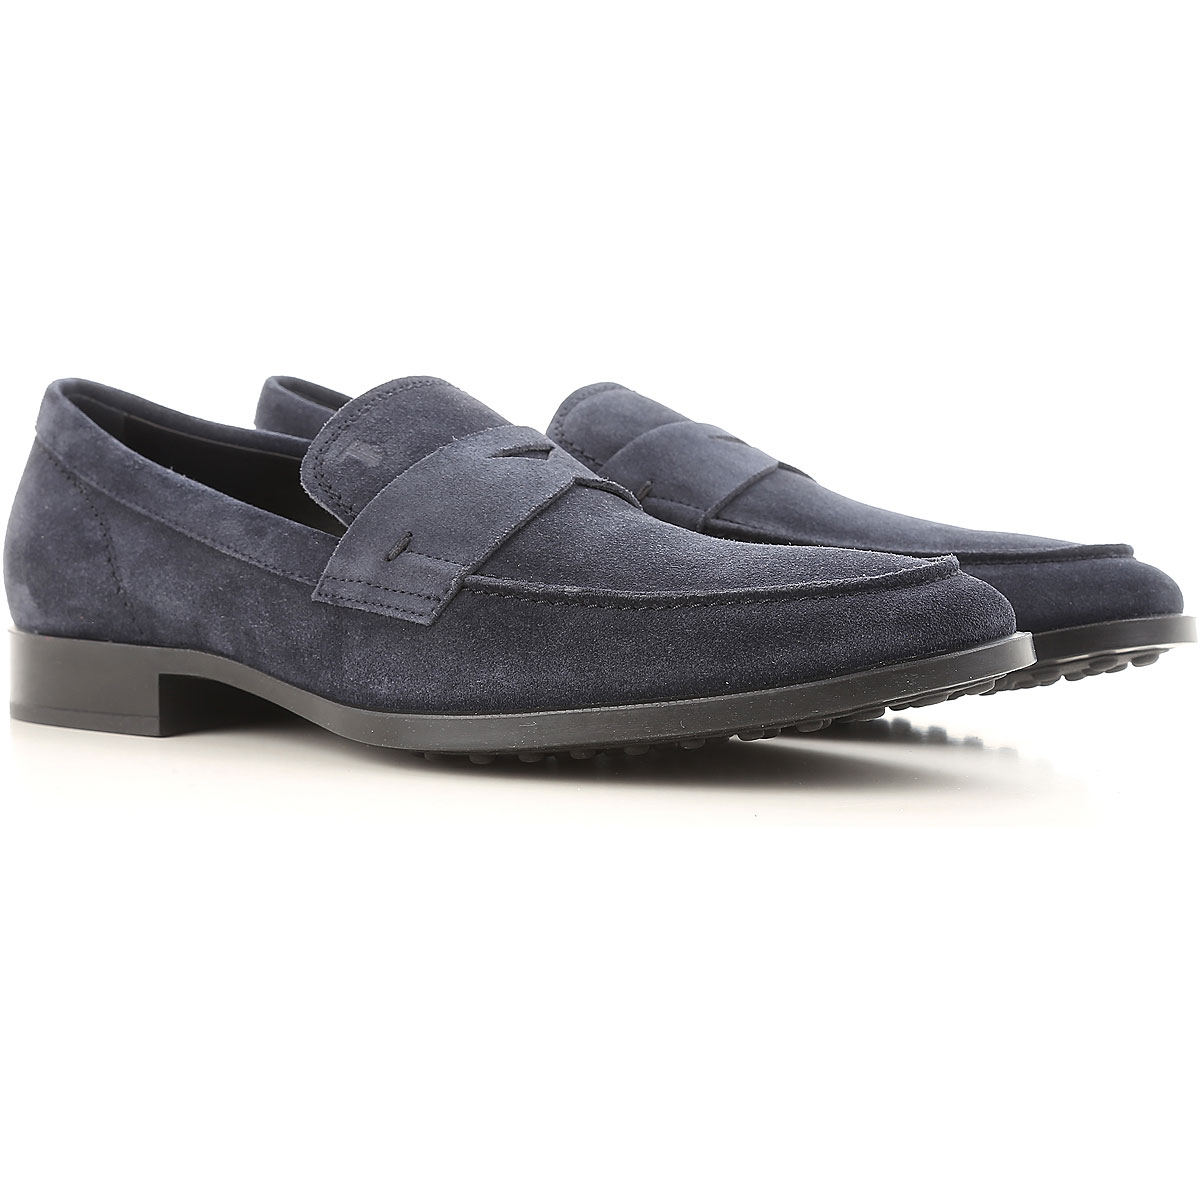 Tods Loafers for Men Midnight Blue SE - GOOFASH